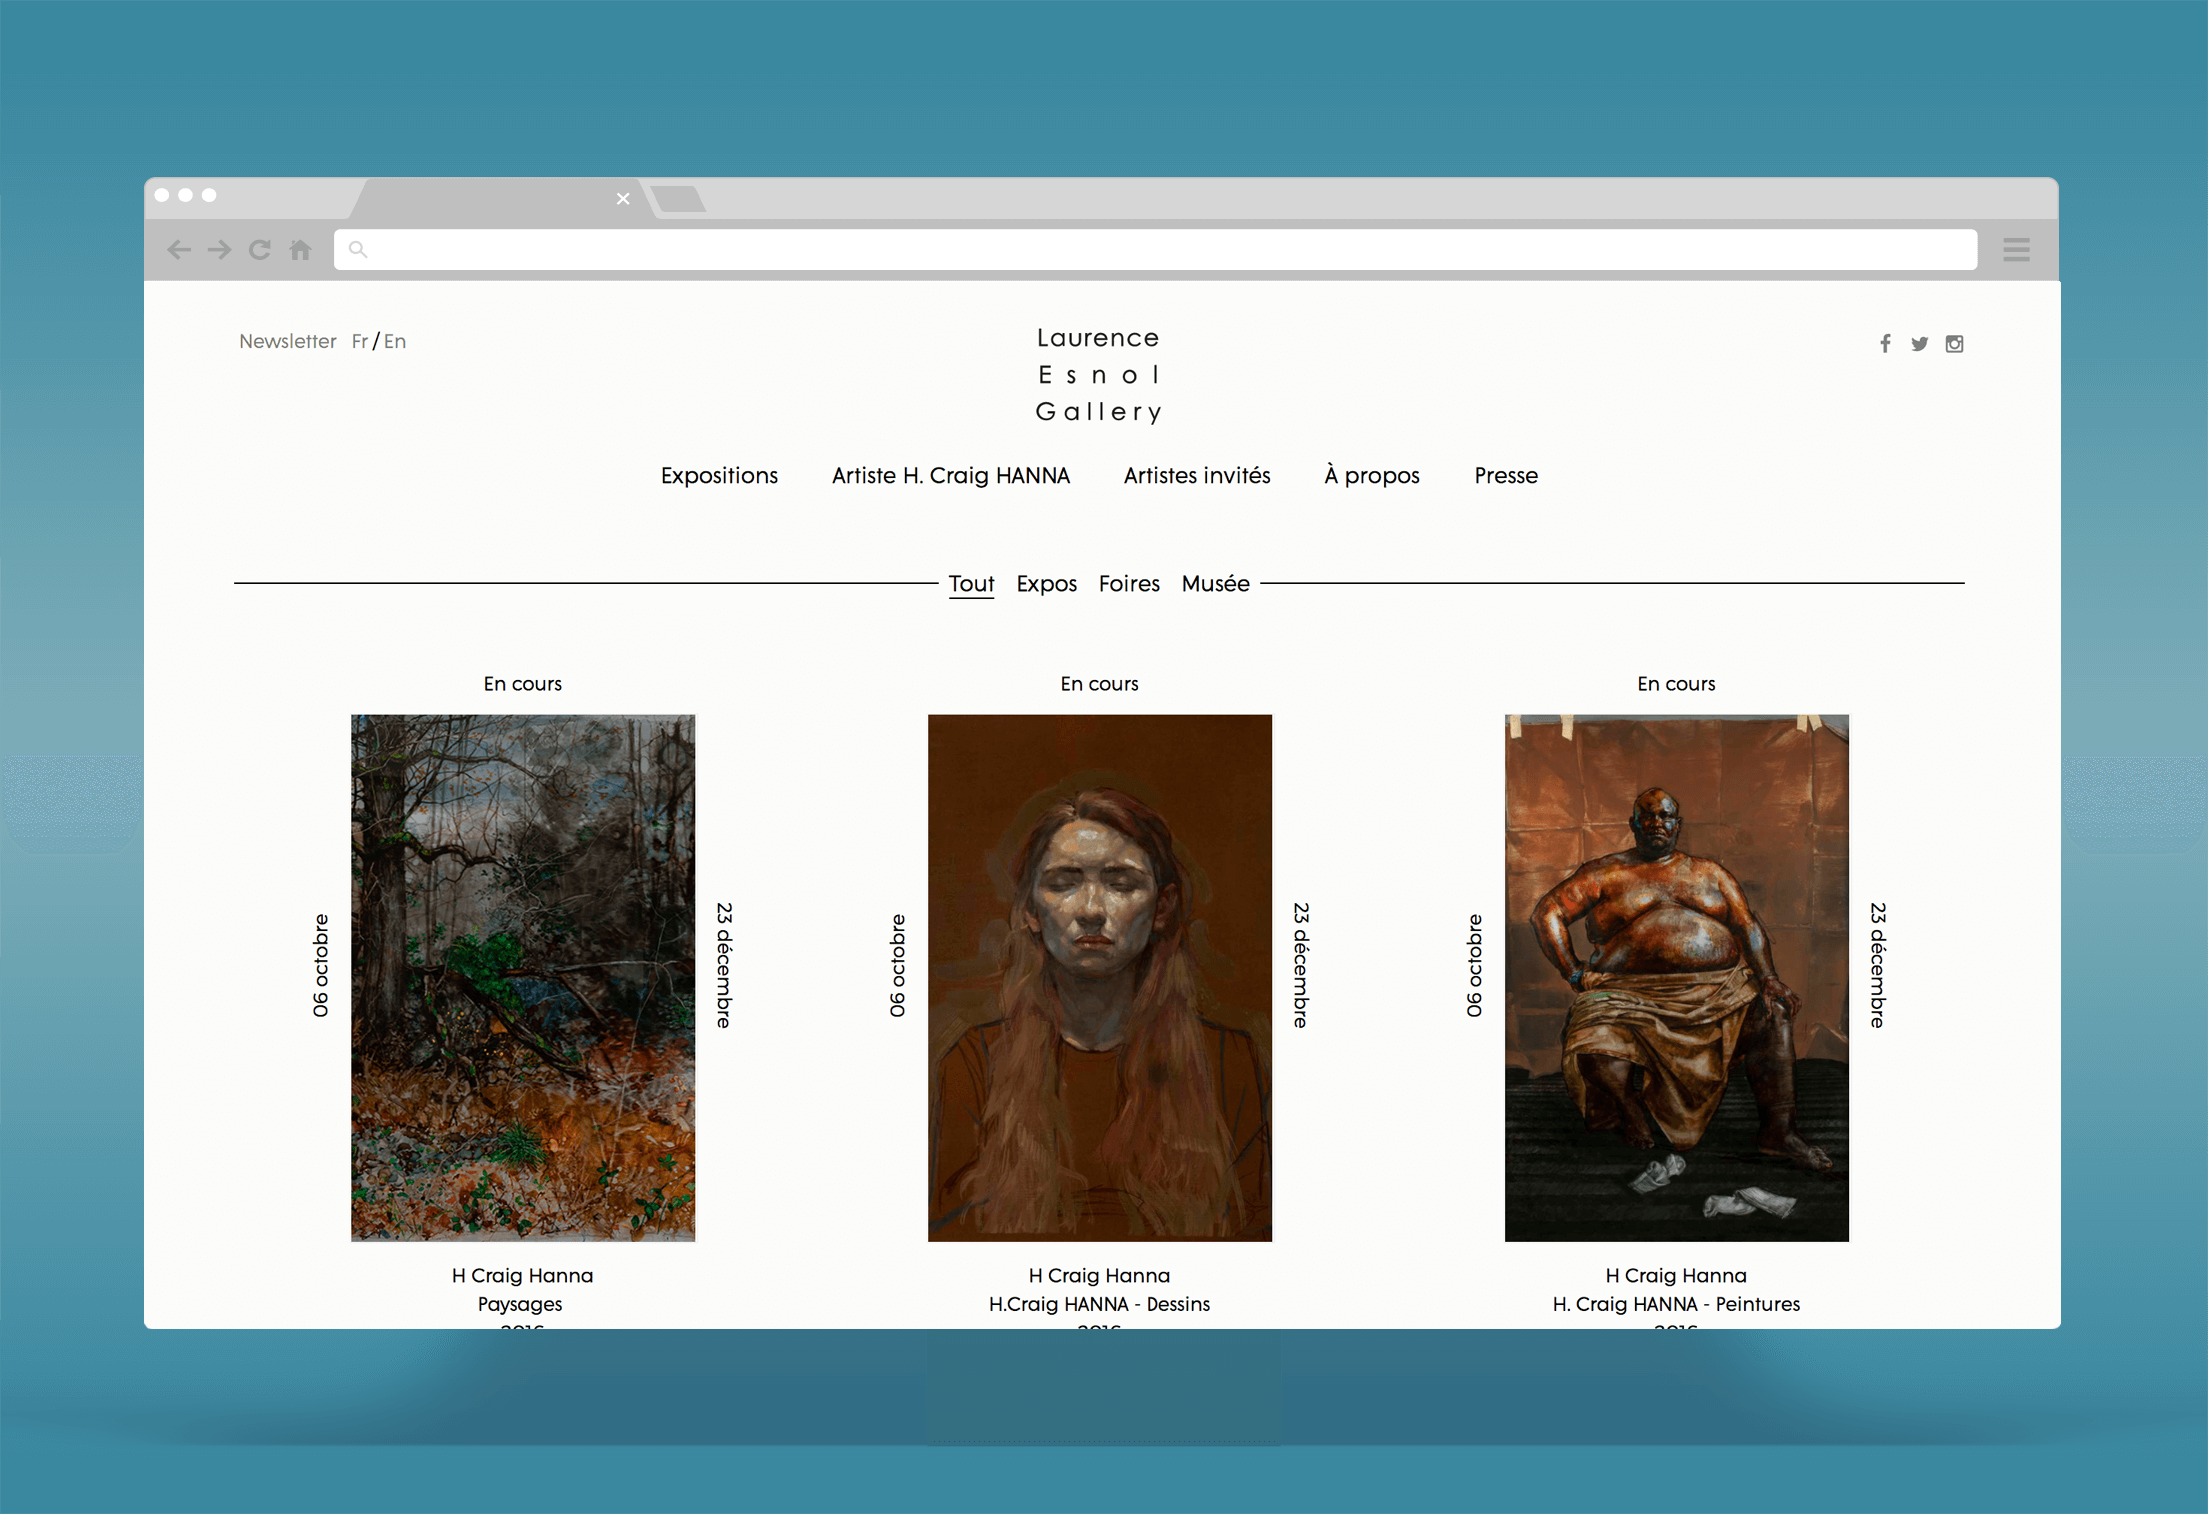 Laurence Esnol Gallery : Développement d'un site Wordpress